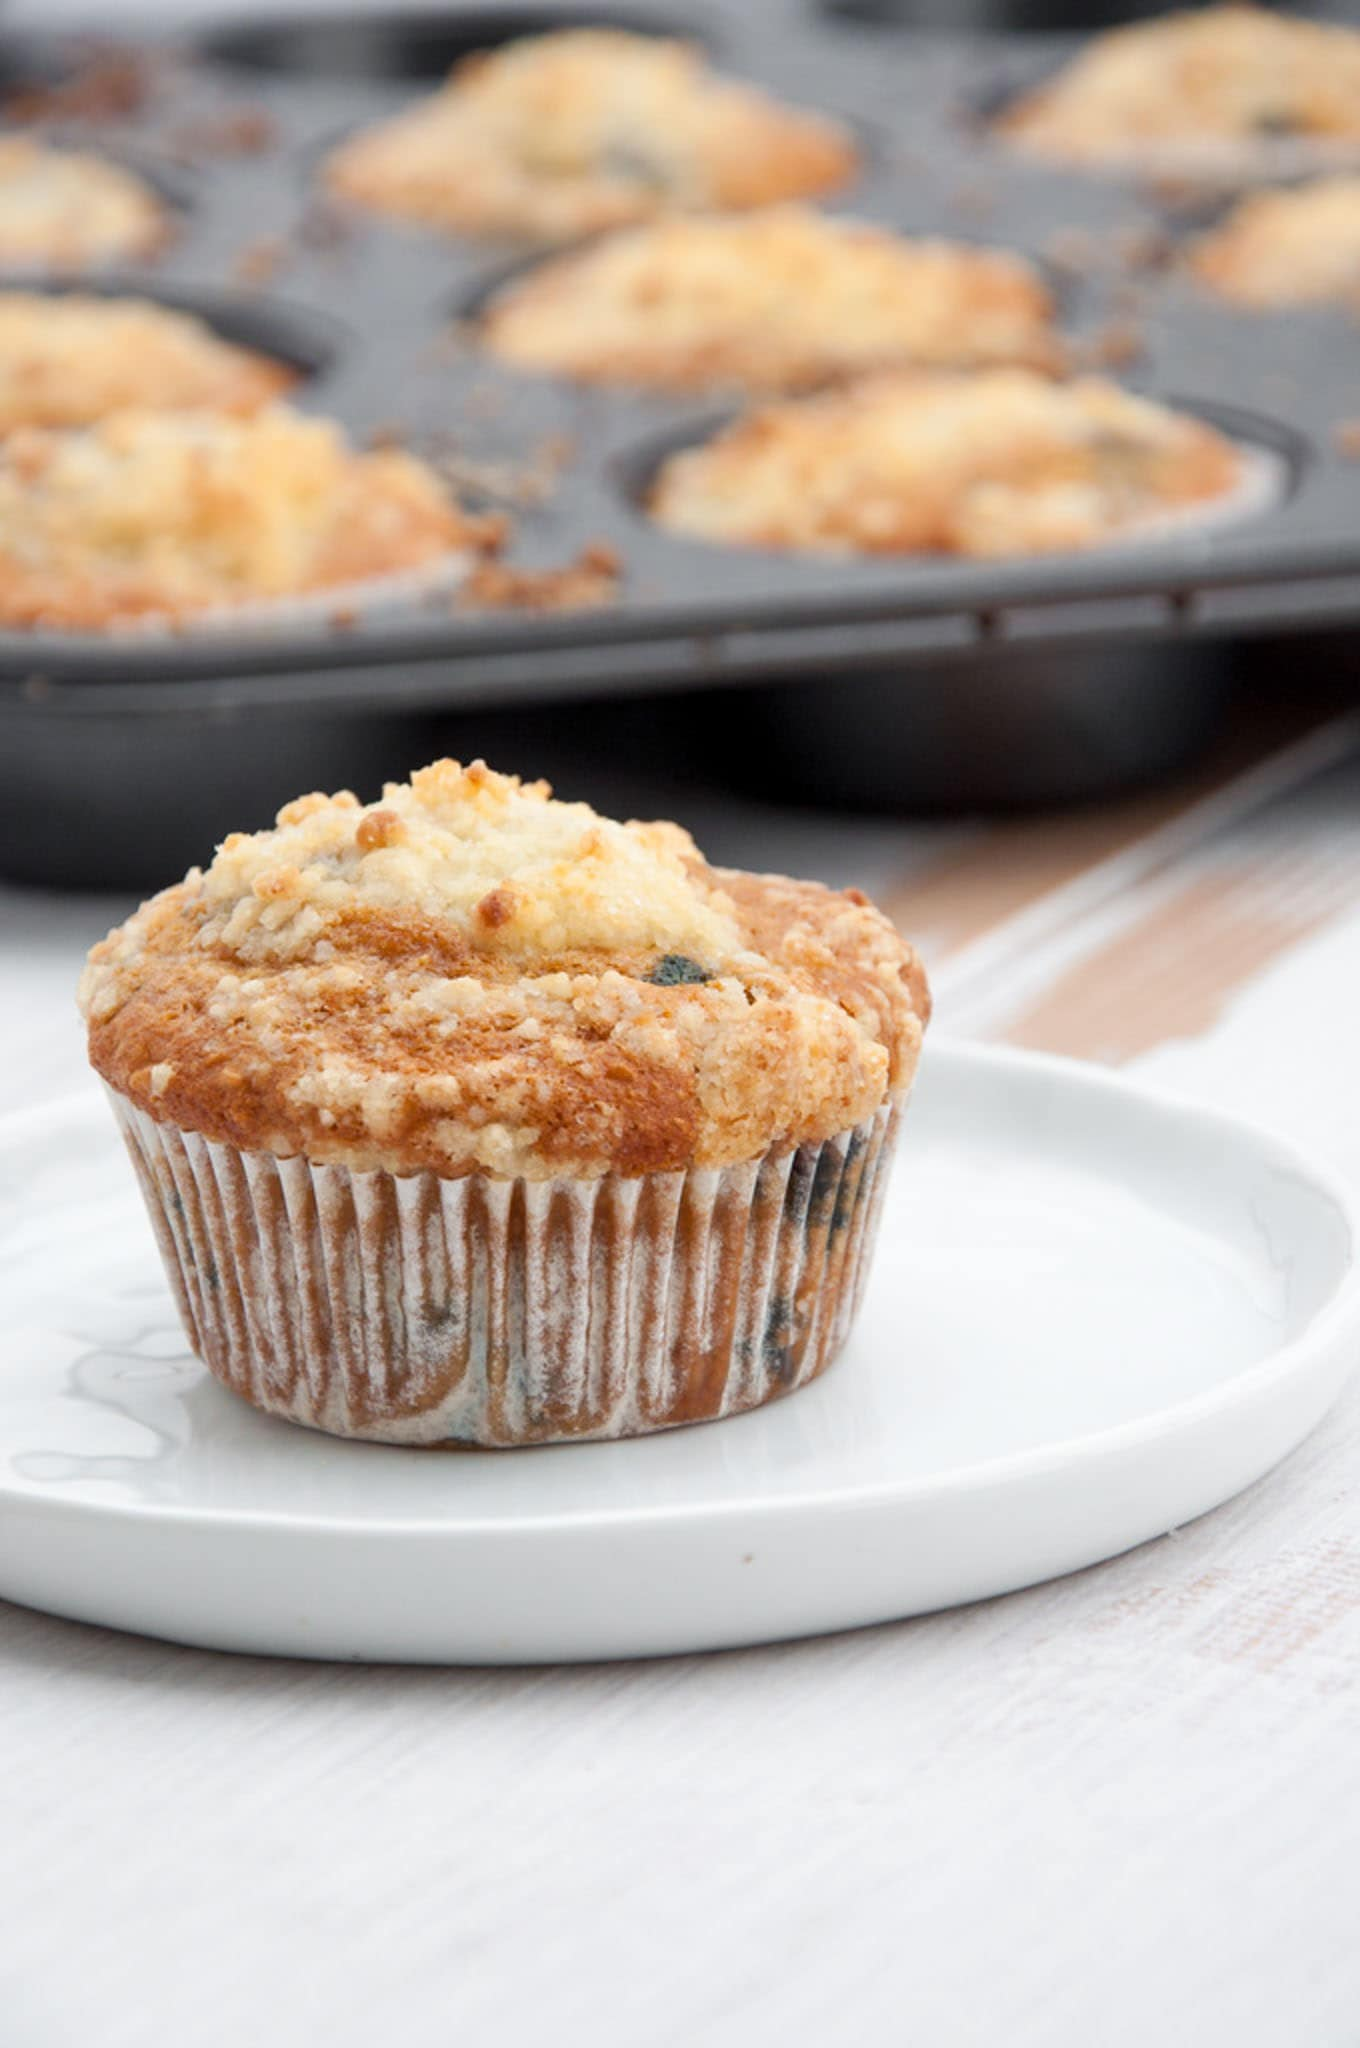 Vegan Blueberry Lemon Streusel Muffins